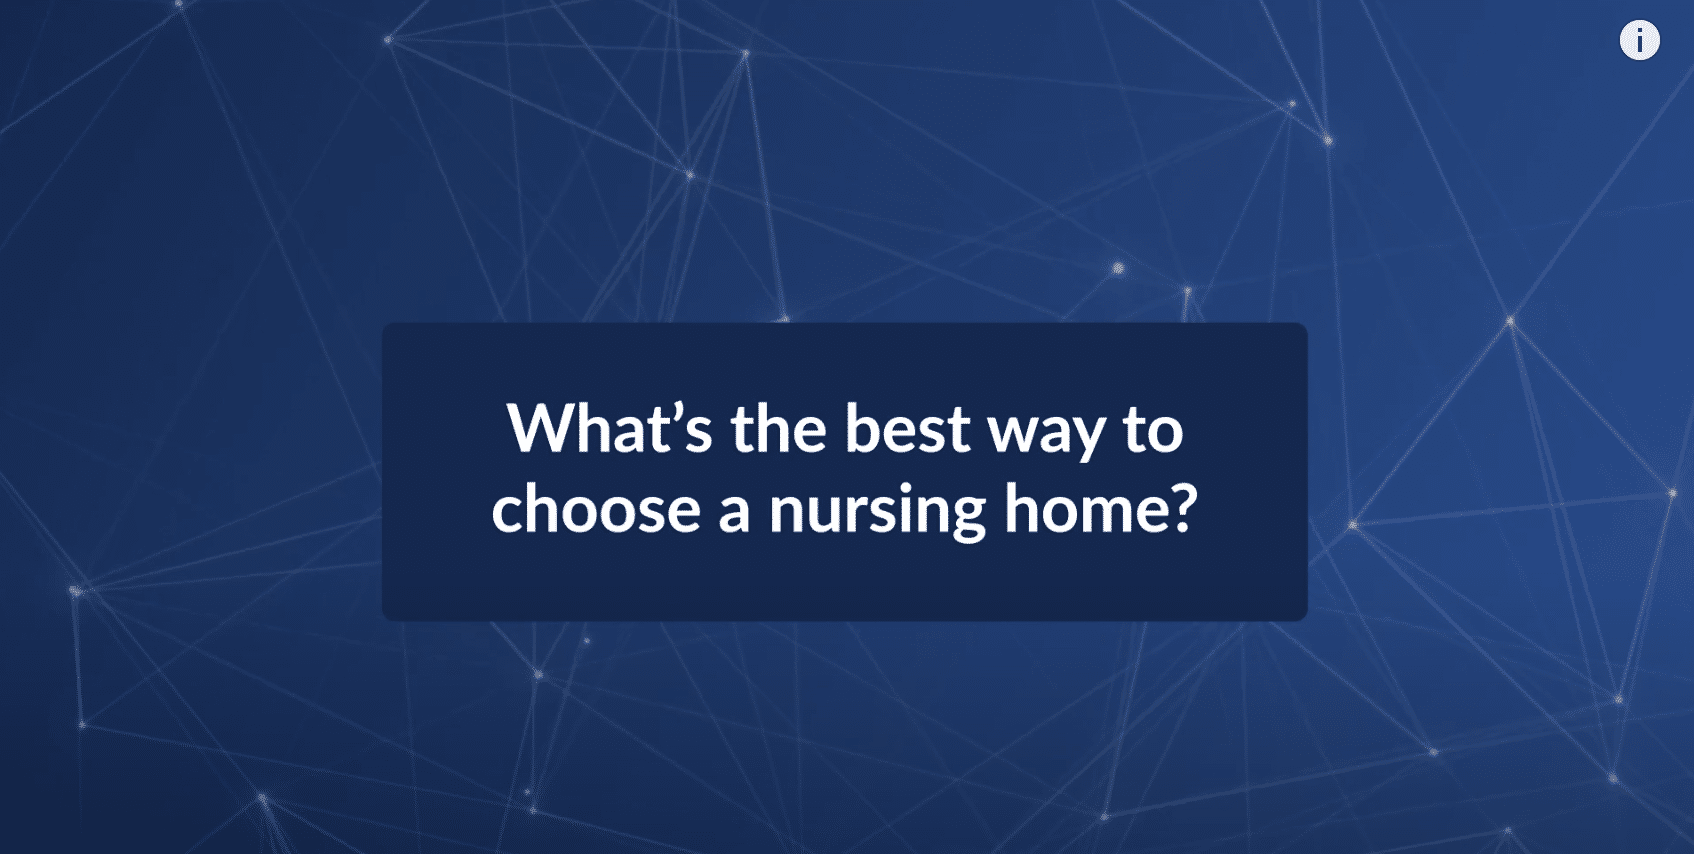 What's the Best Way to Choose a Nursing Home?